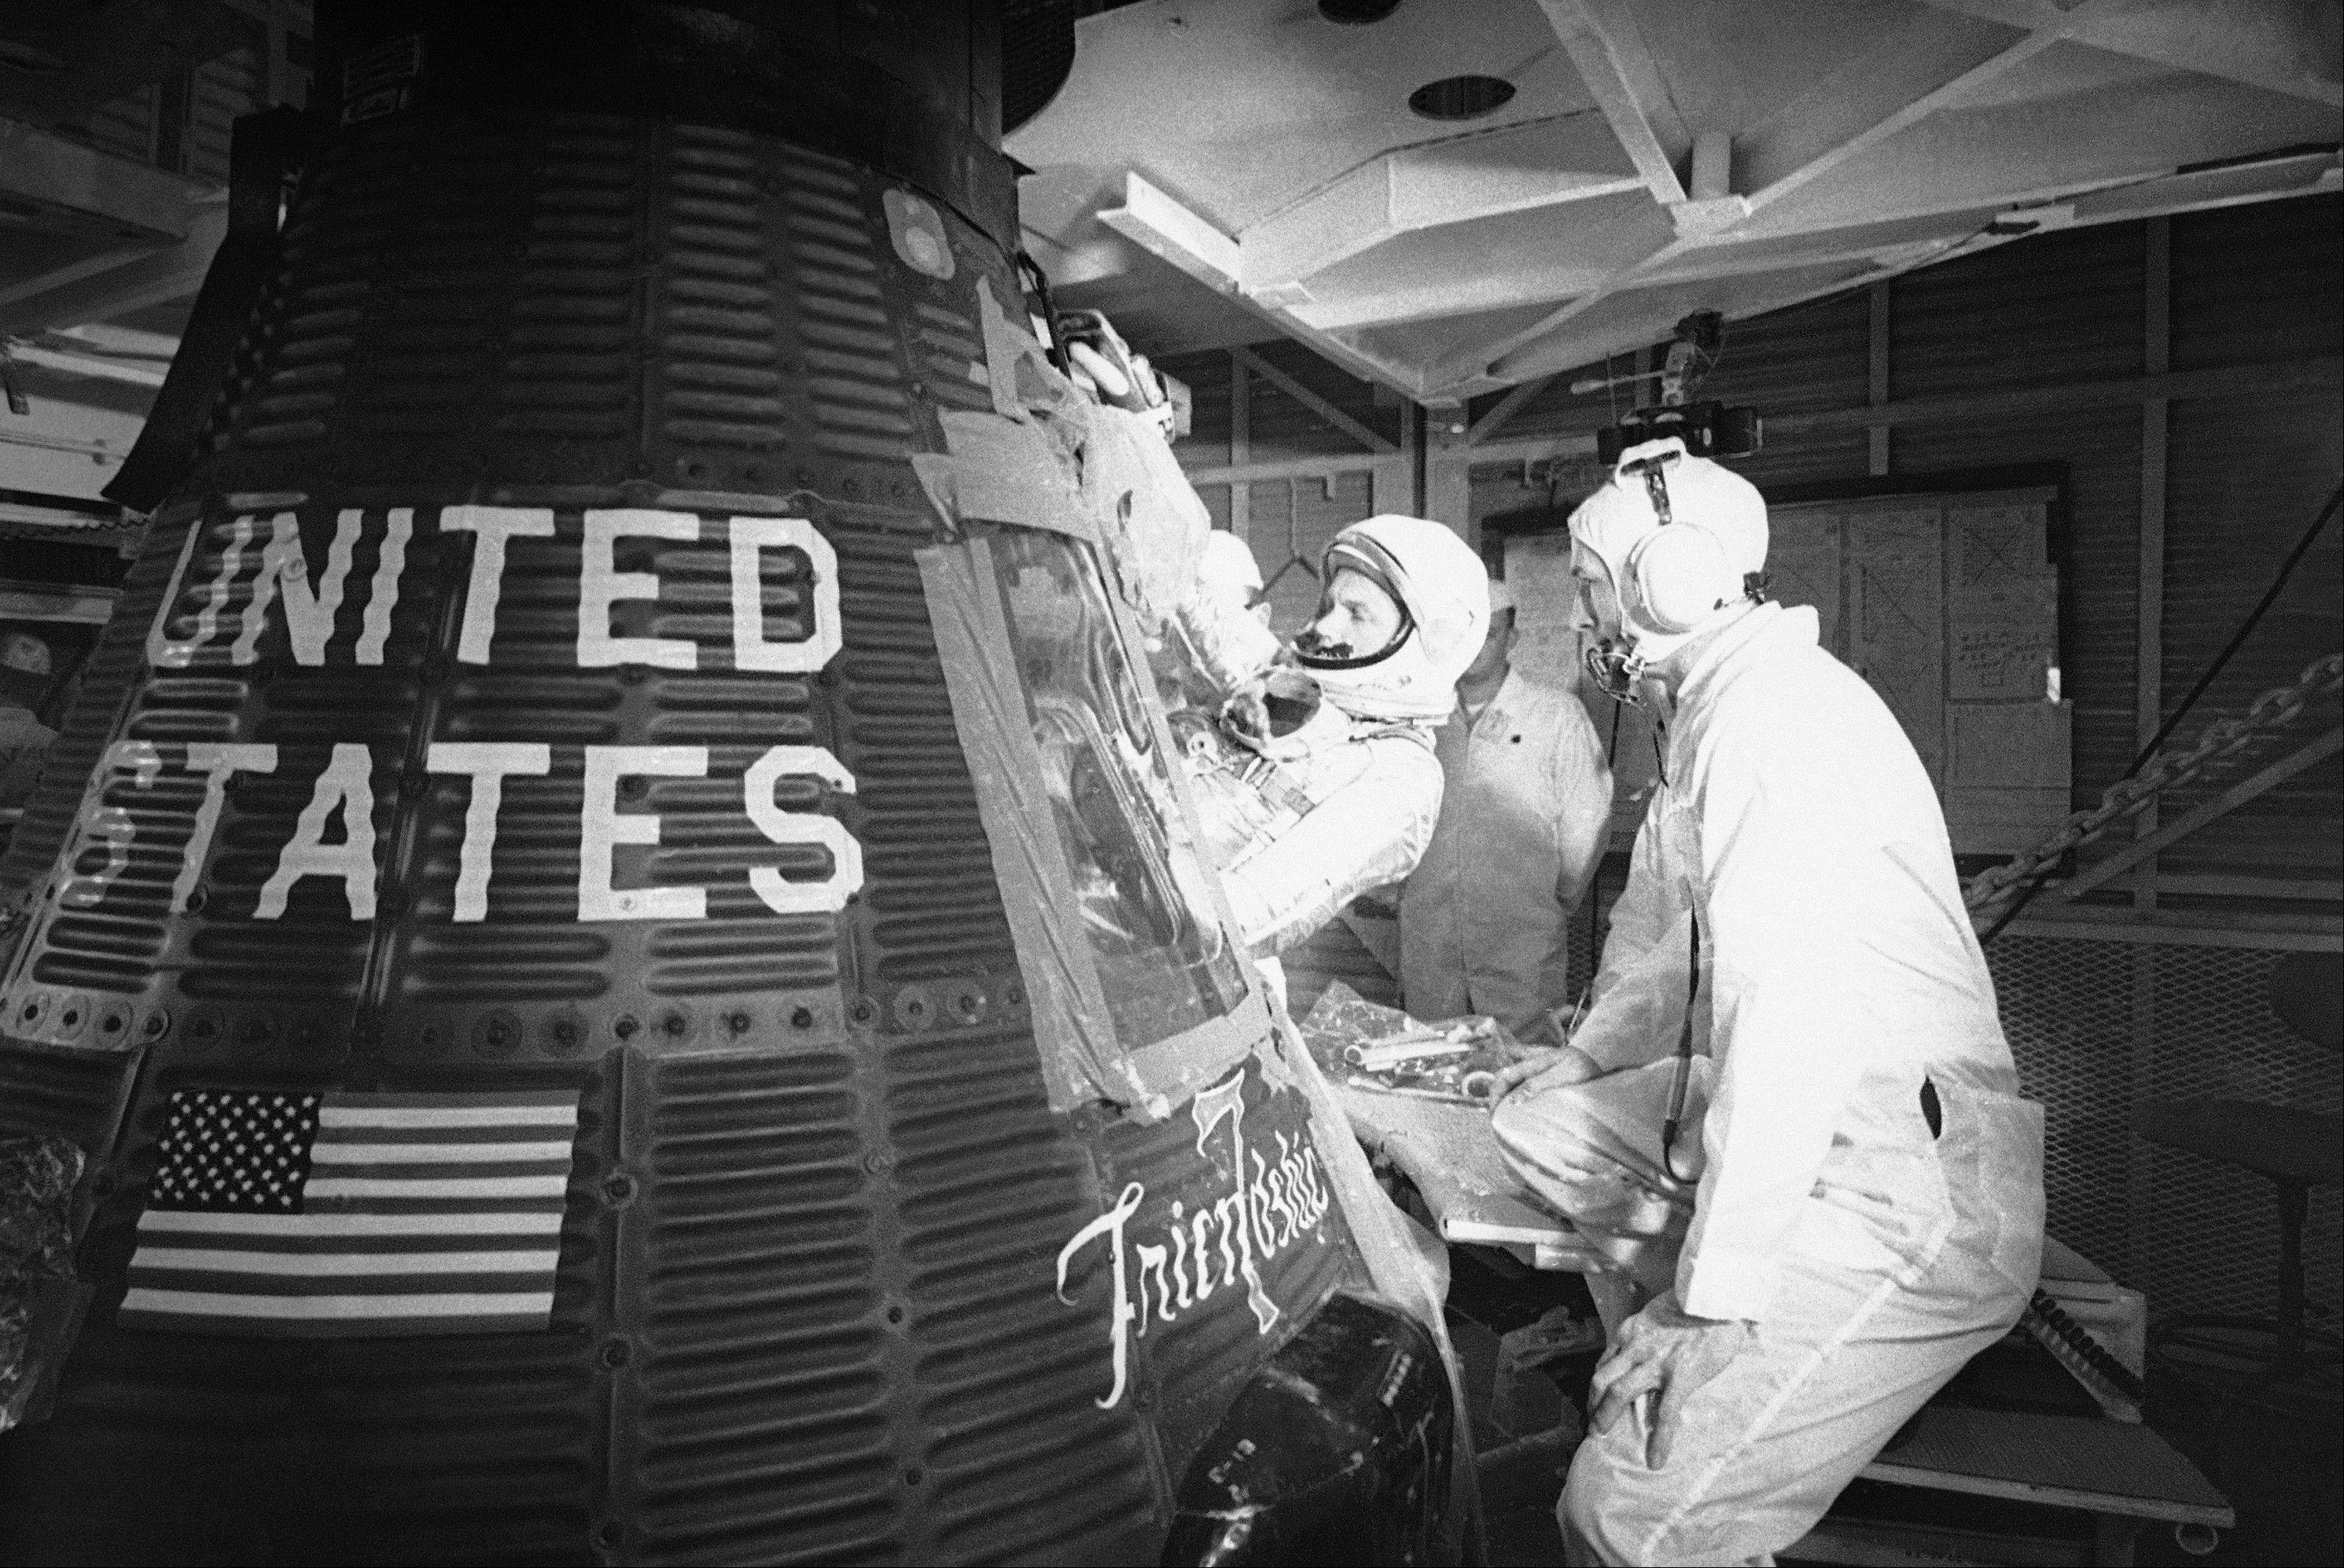 "In this Jan. 2, 1962 file picture, astronaut John Glenn climbs into the ""Friendship 7"" Mercury capsule at Cape Canaveral, Fla. The family of Neil Armstrong, the first man to walk on the moon, says he has died at age 82. A statement from the family says he died following complications resulting from cardiovascular procedures. It doesn't say where he died. Armstrong commanded the Apollo 11 spacecraft that landed on the moon July 20, 1969. He radioed back to Earth the historic news of ""one giant leap for mankind."" Armstrong and fellow astronaut Edwin ""Buzz"" Aldrin spent nearly three hours walking on the moon, collecting samples, conducting experiments and taking photographs. In all, 12 Americans walked on the moon from 1969 to 1972."